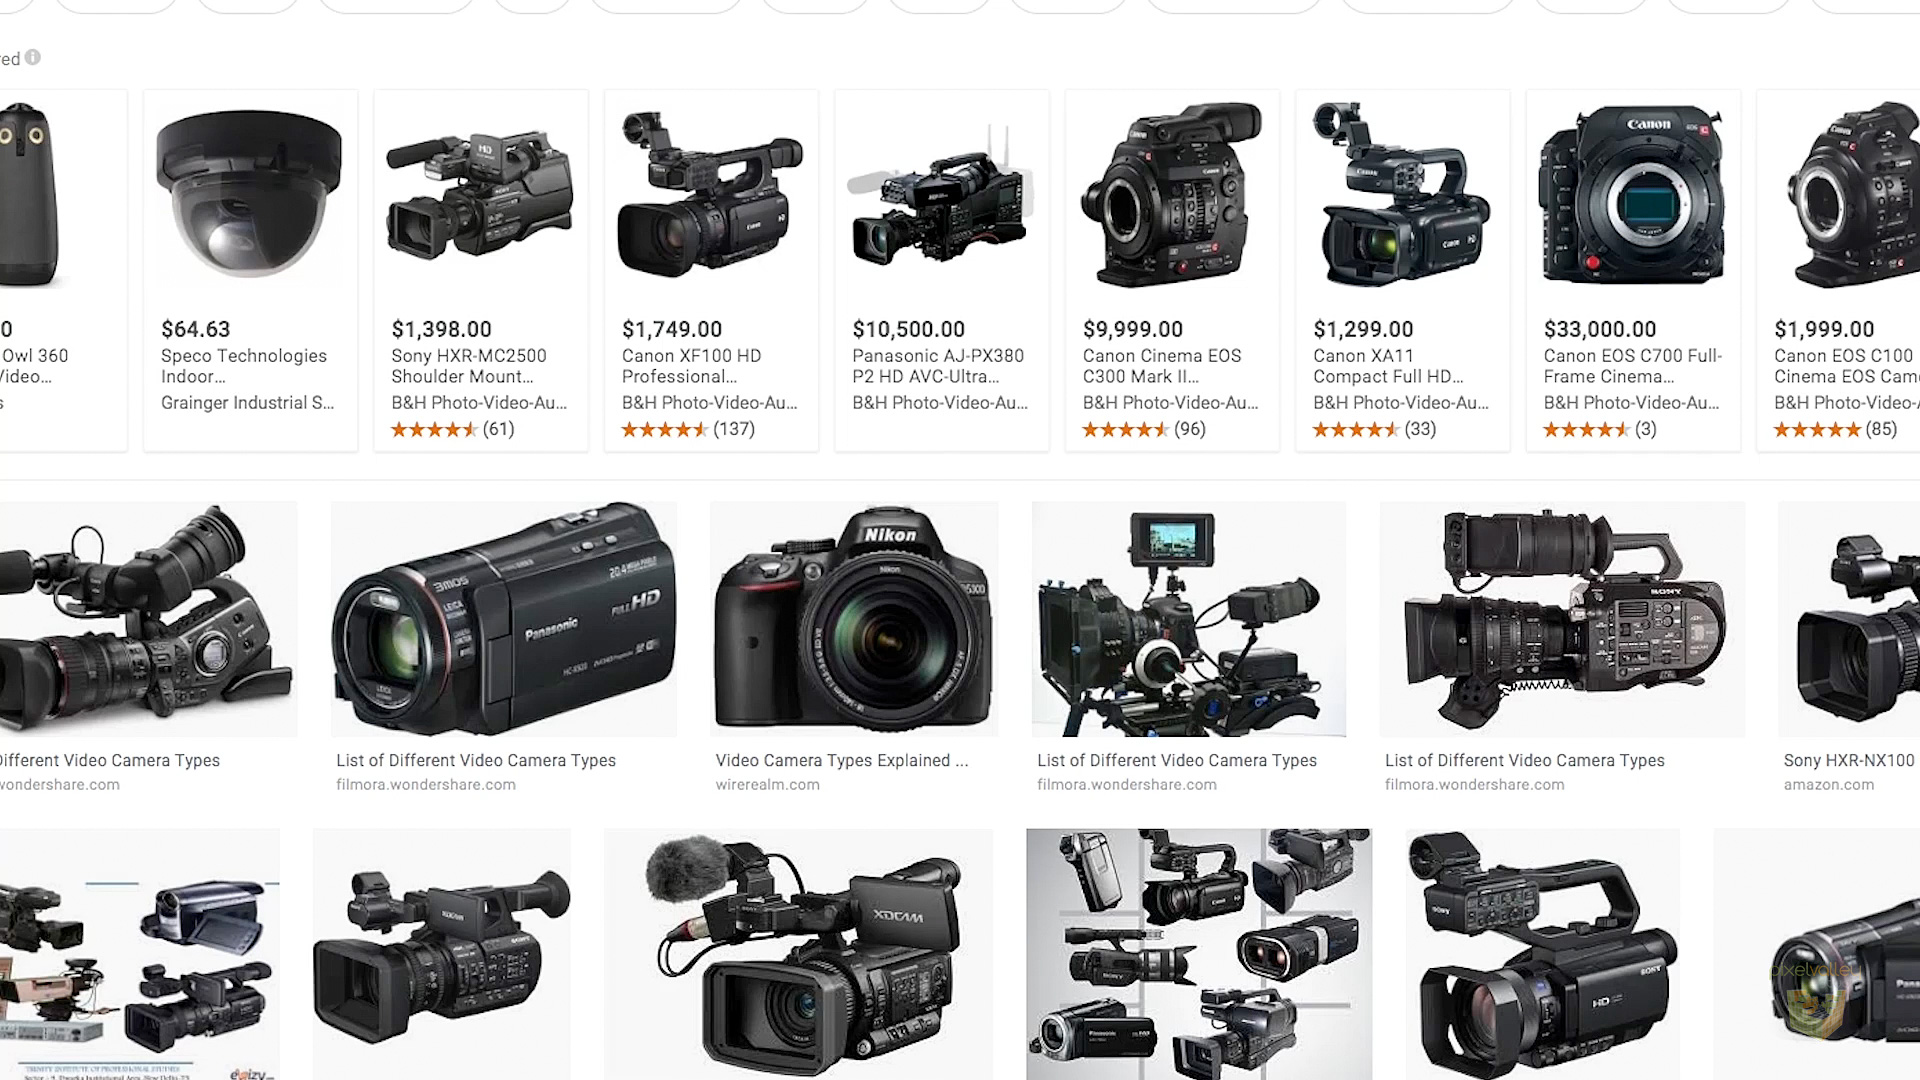 So many video cameras to choose from. How do you narrow down the field for your video needs?